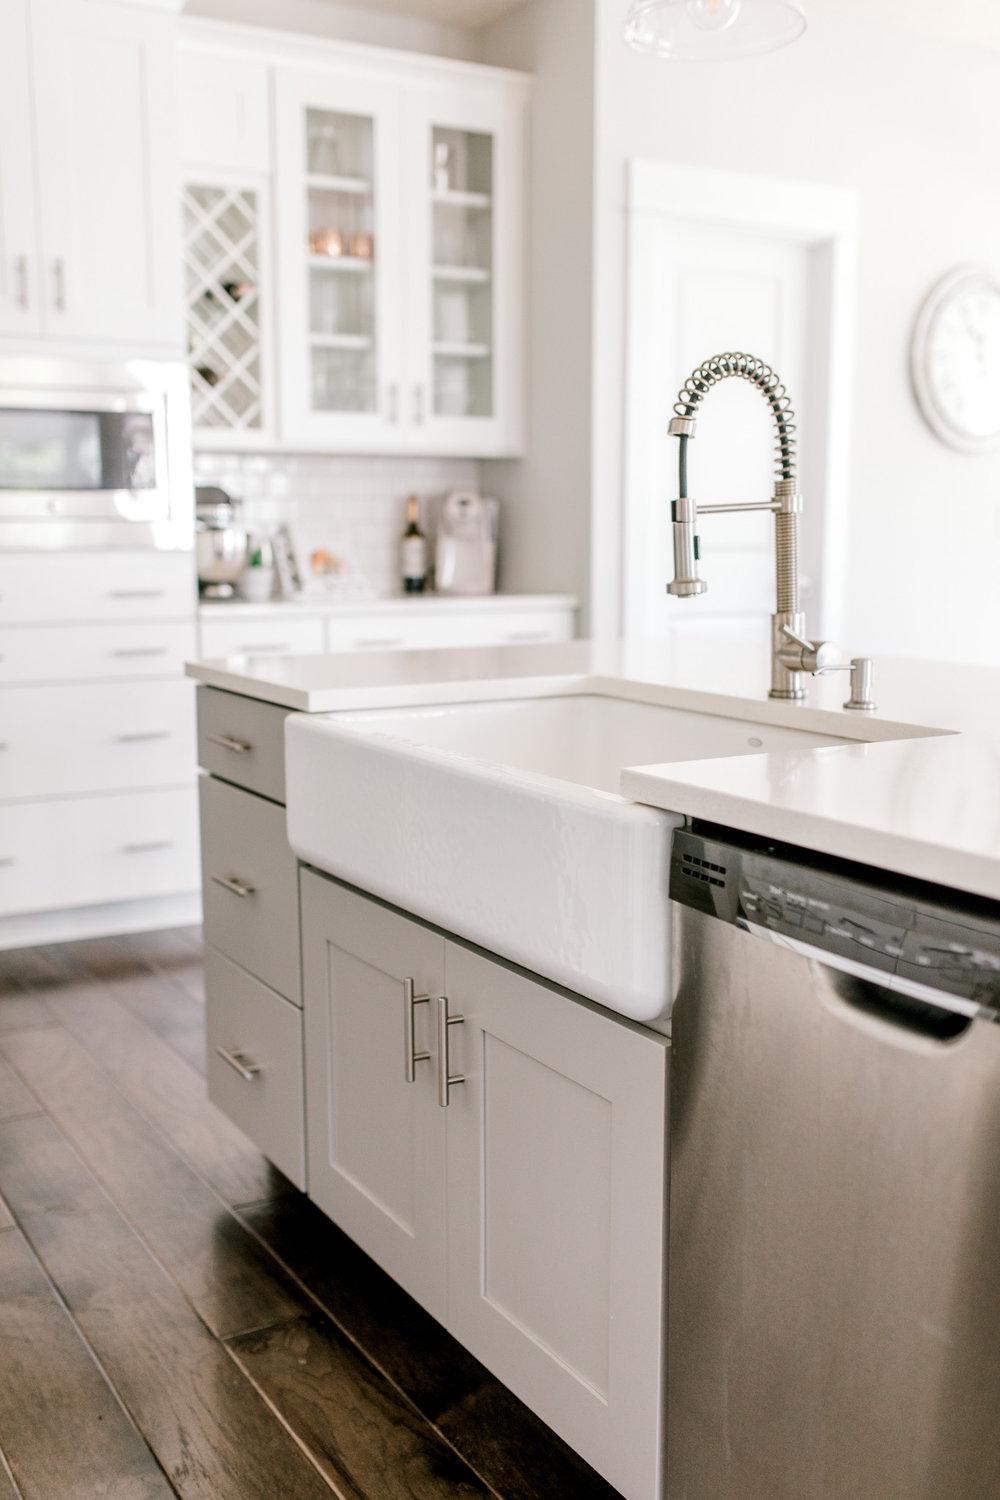 My White Modern Farmhouse Dream Kitchen | Industrial Kitchen | Fixer Upper Style Kitchen | Gray & White Kitchen | Apron Sink & Subway Tile